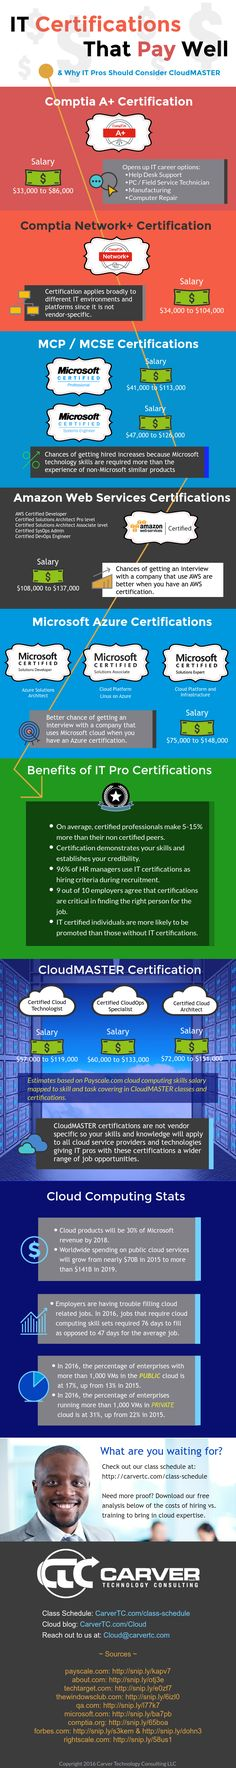 IT Certifications that are Really Worth Getting